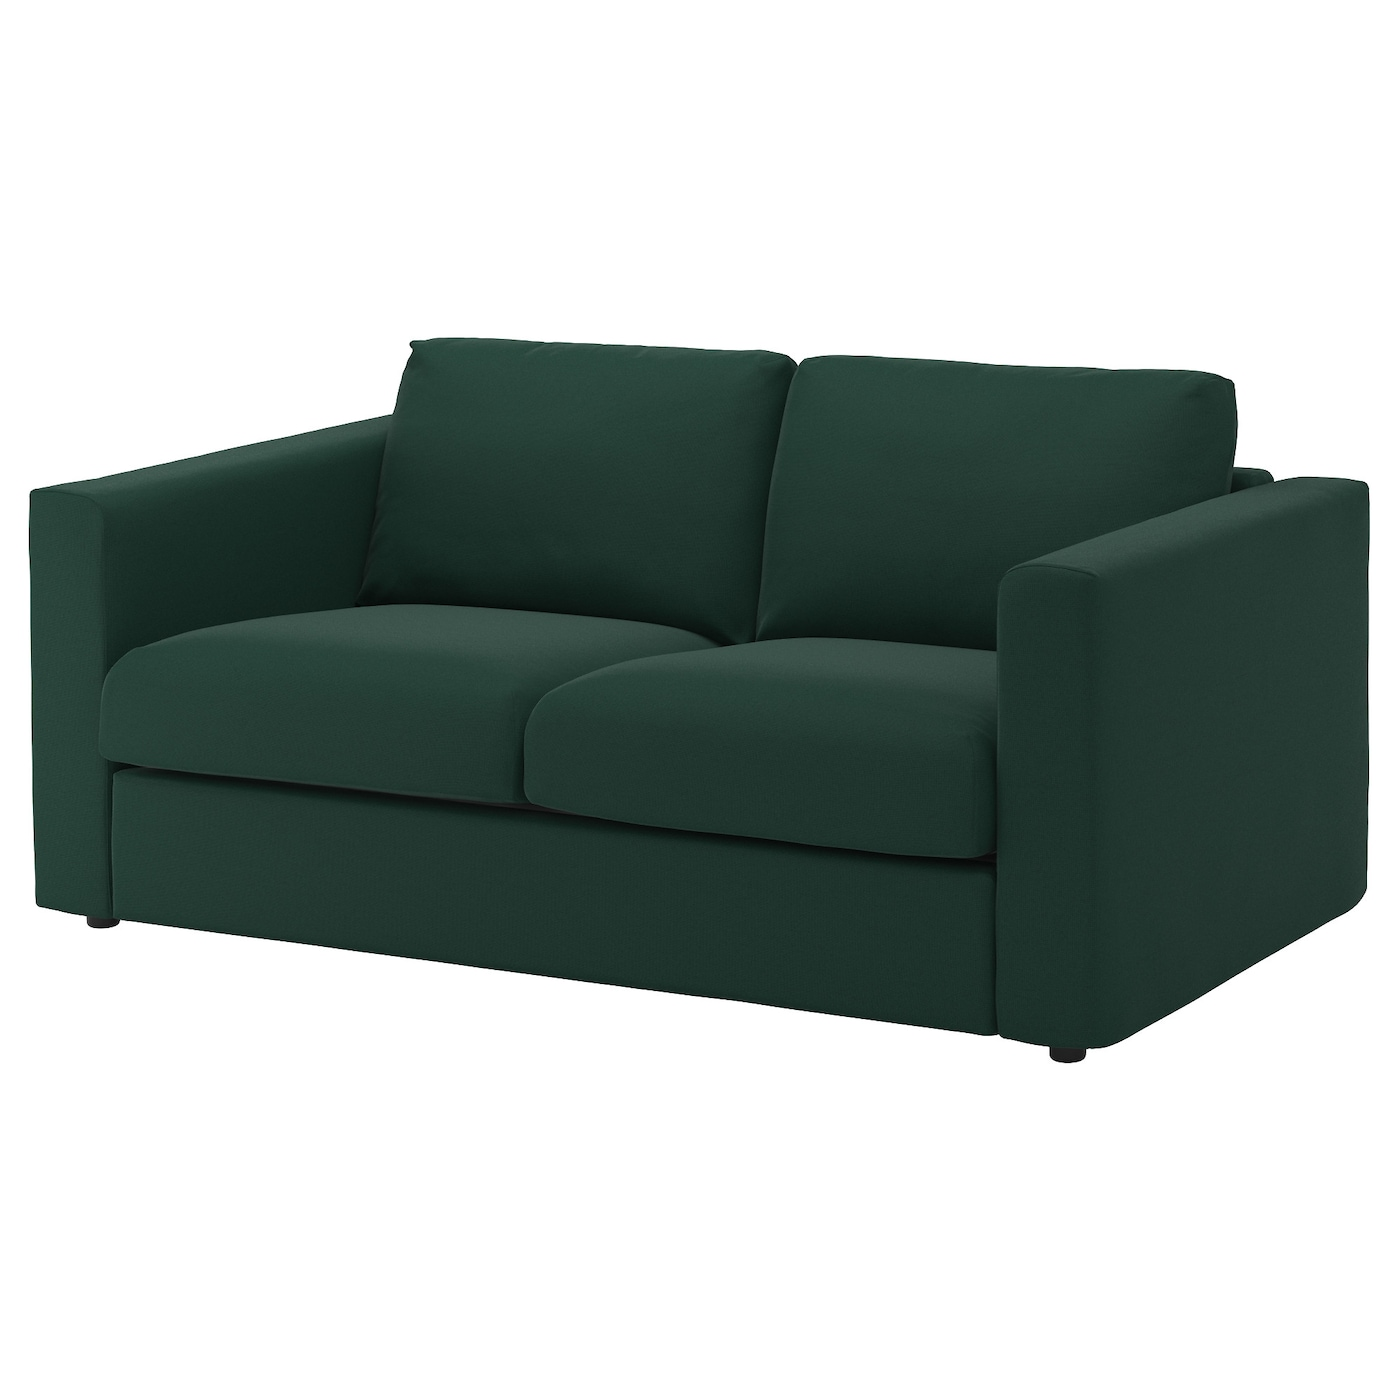 ikea green sofa fabric couches sofas ikea thesofa. Black Bedroom Furniture Sets. Home Design Ideas